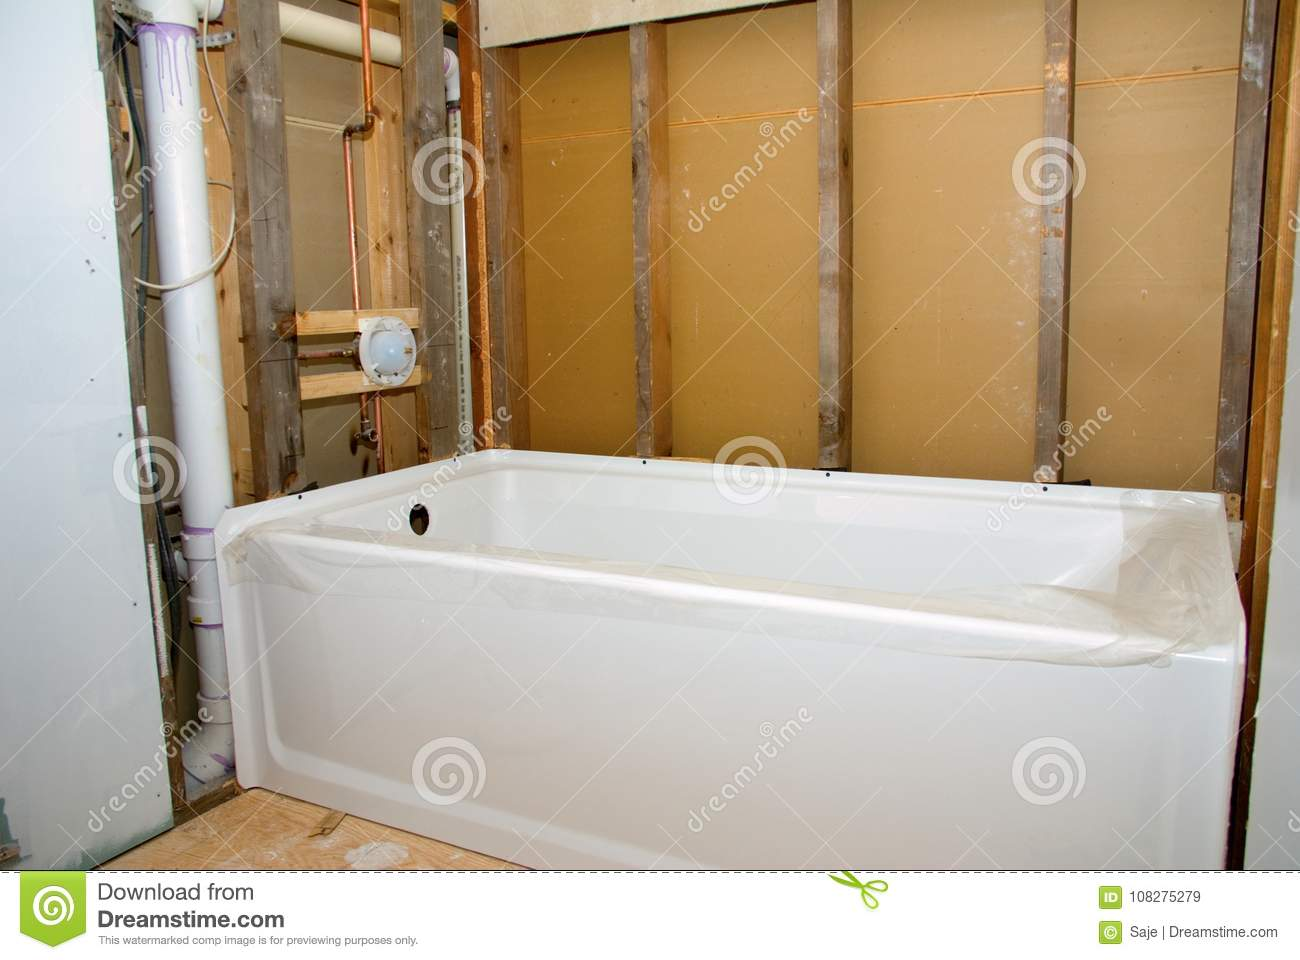 Bathroom Remodel Tub And Bare Walls Stock Image - Image of ...